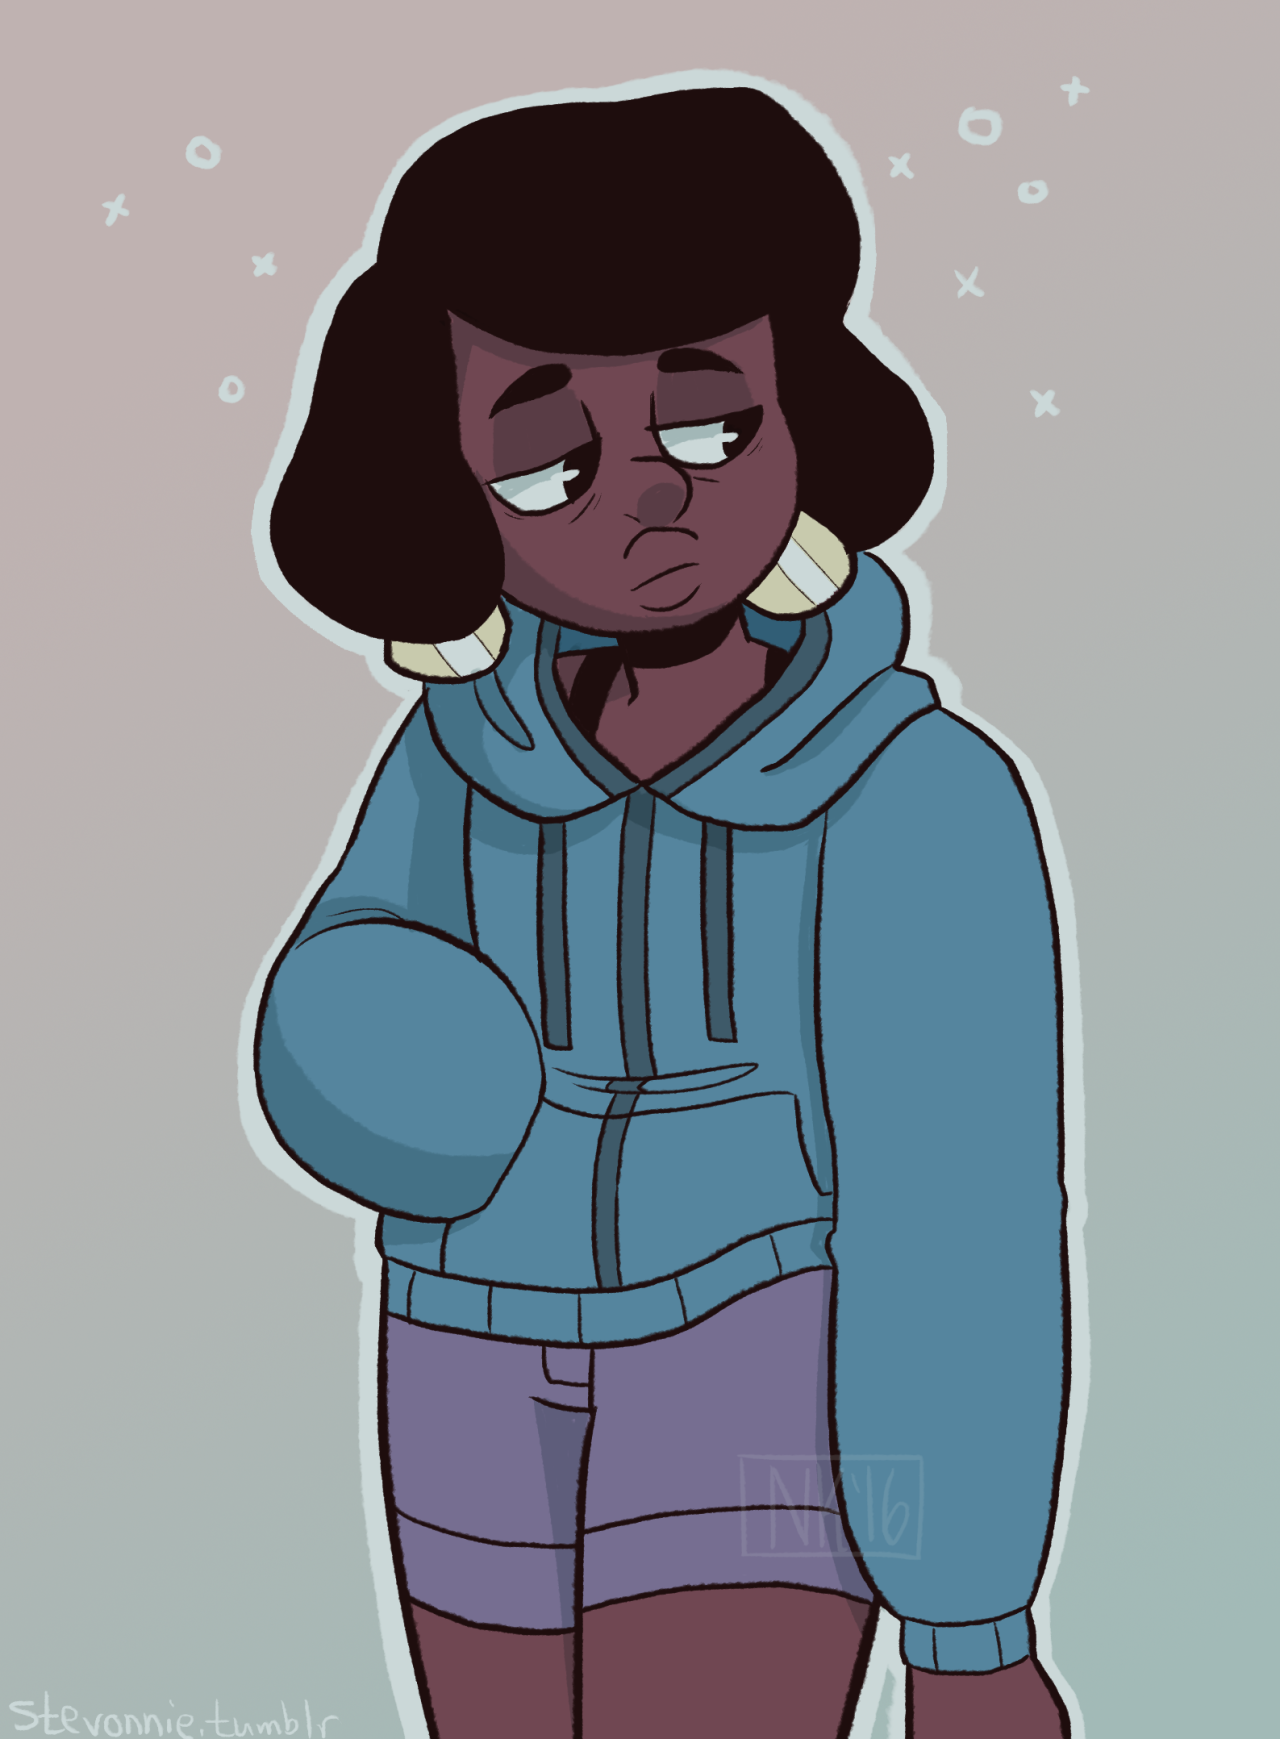 i always see art of buck in sour cream's jacket but never jenny